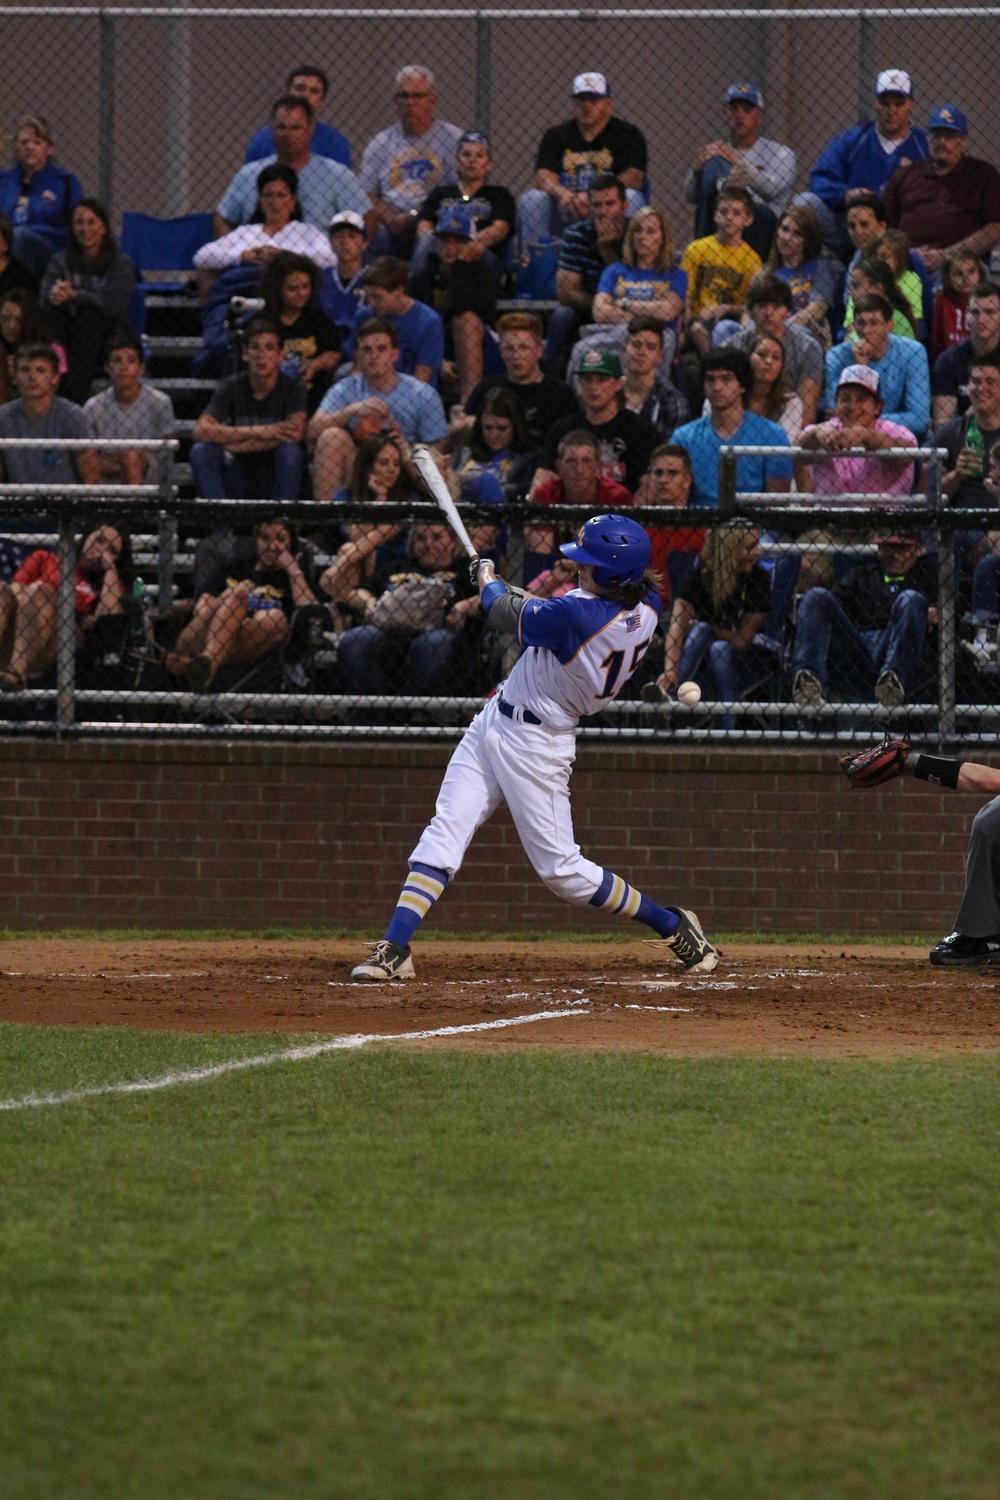 (Photo by Bill Higgins) Kevin Dickey taking a swing against Van.